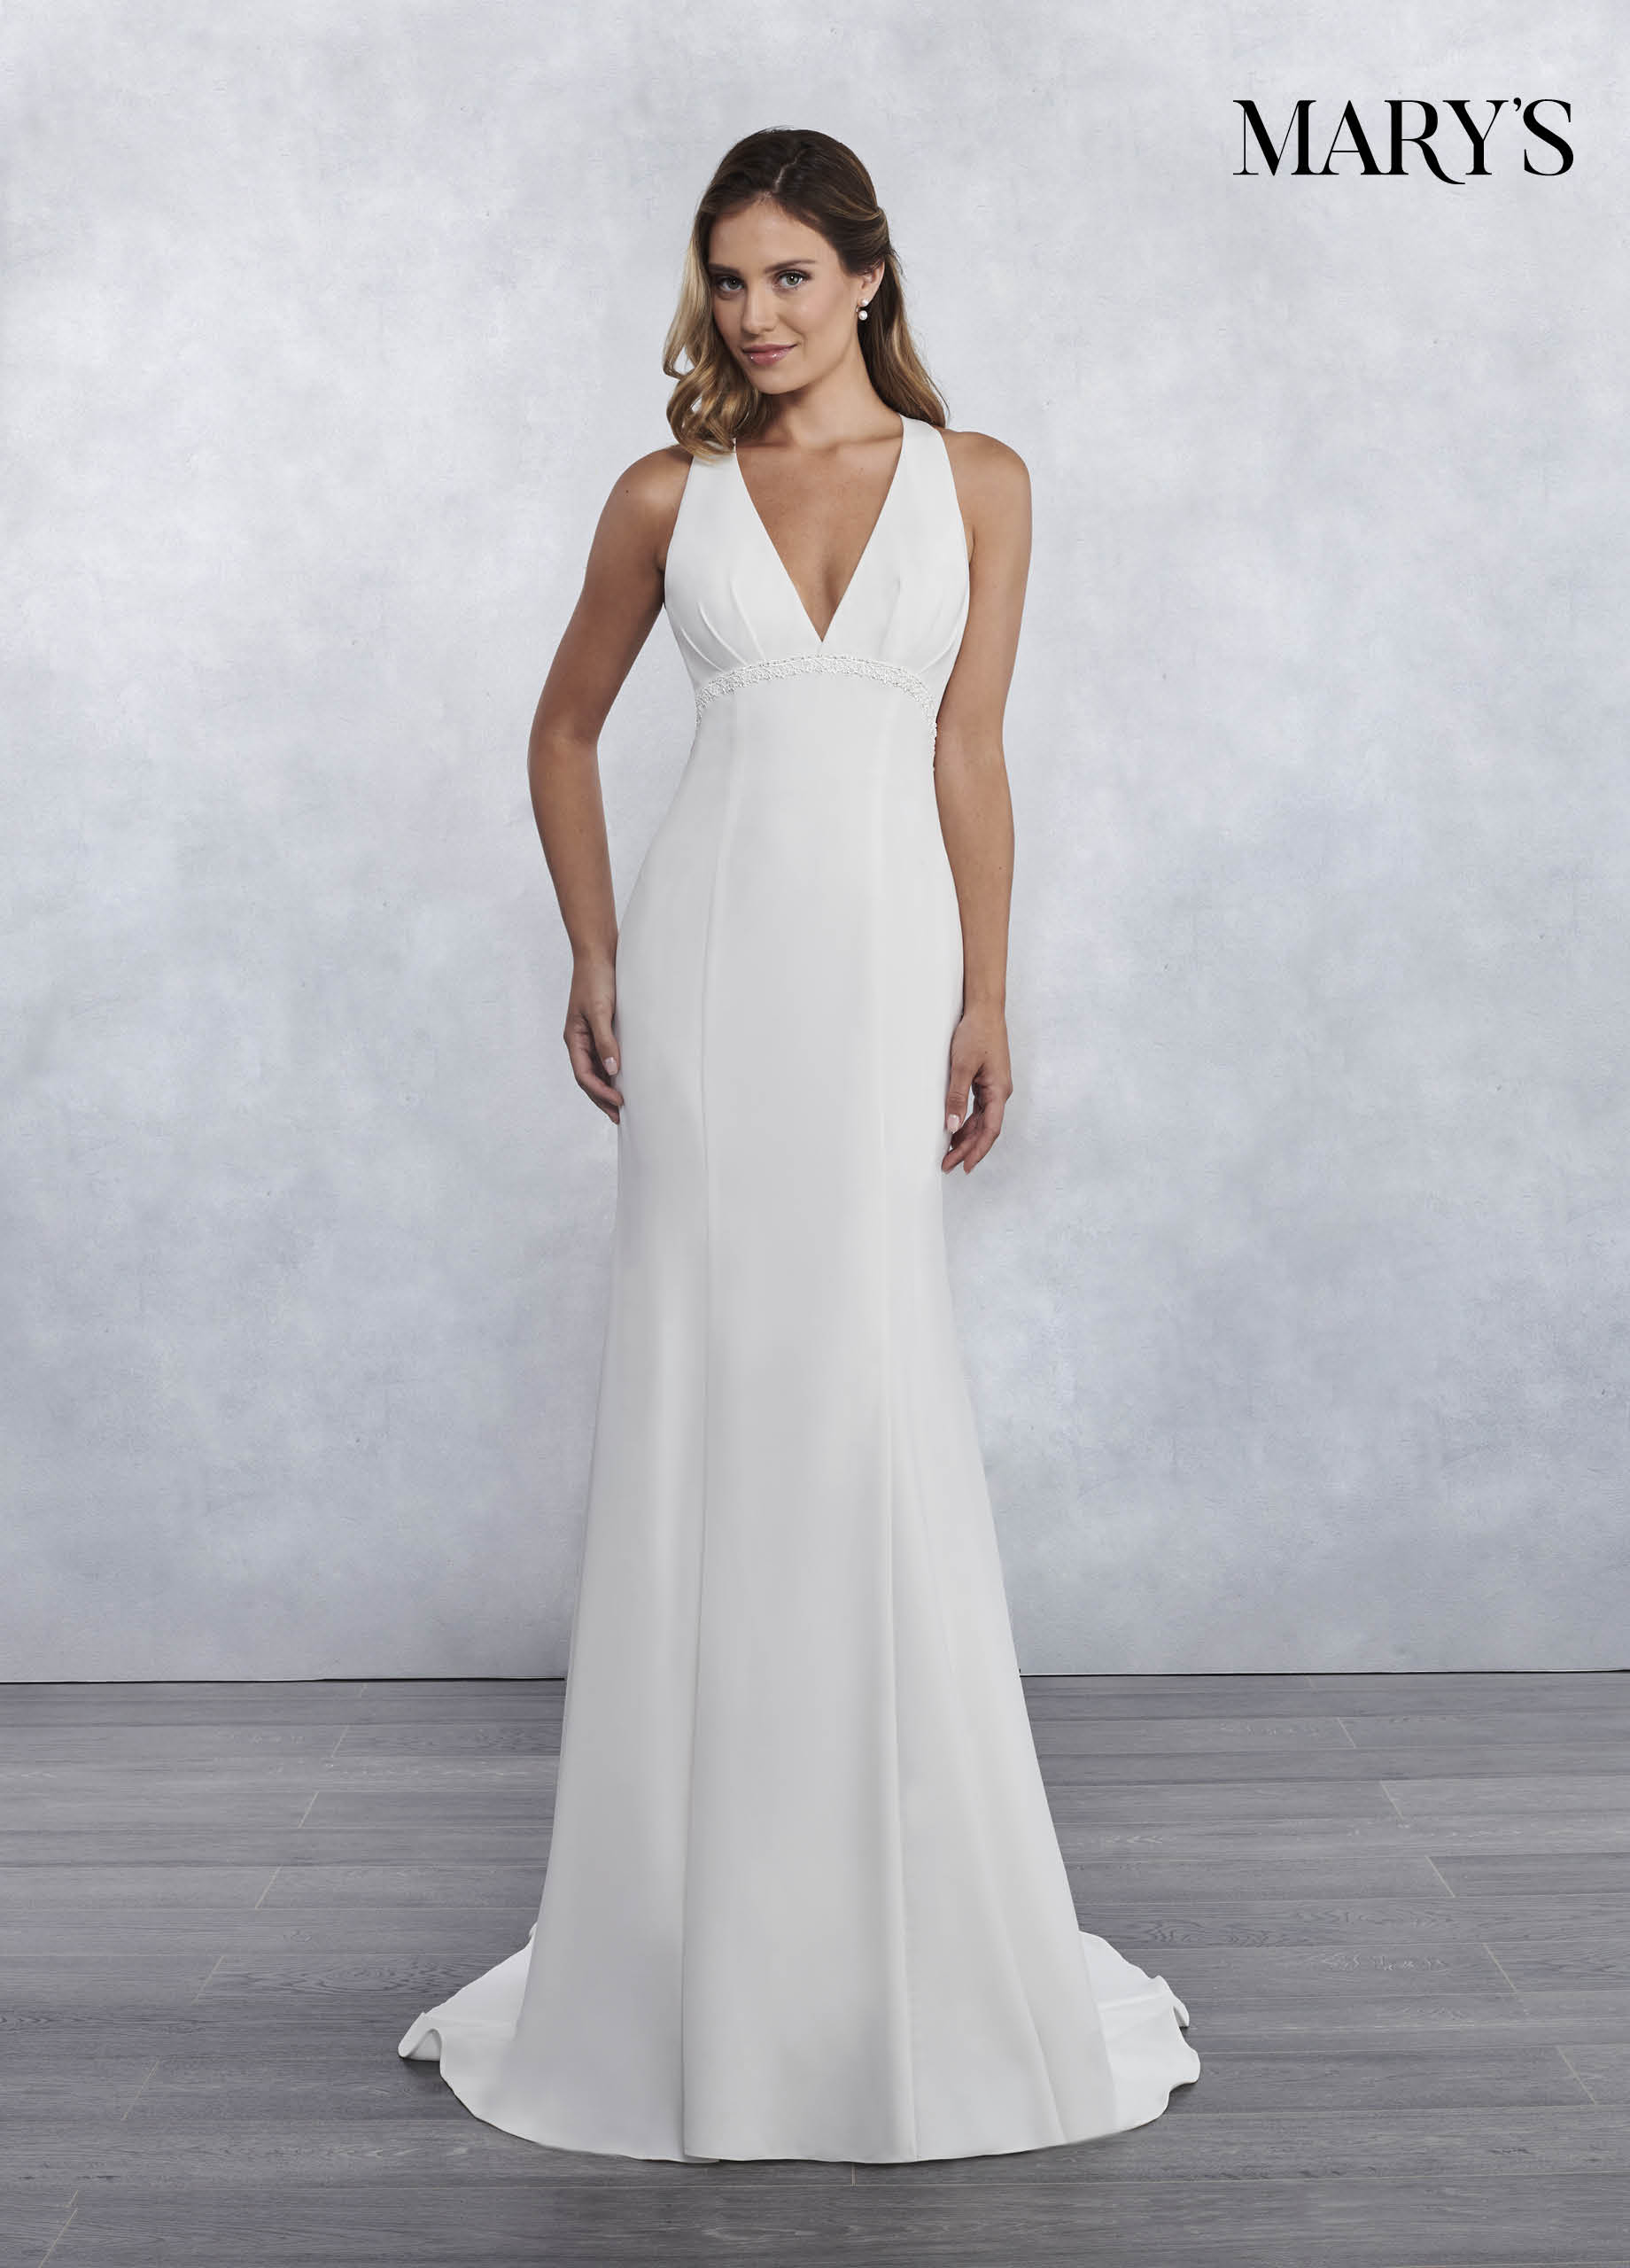 998ede424c94 Bridal Wedding Dresses | Style - MB1026 in Ivory or White Color